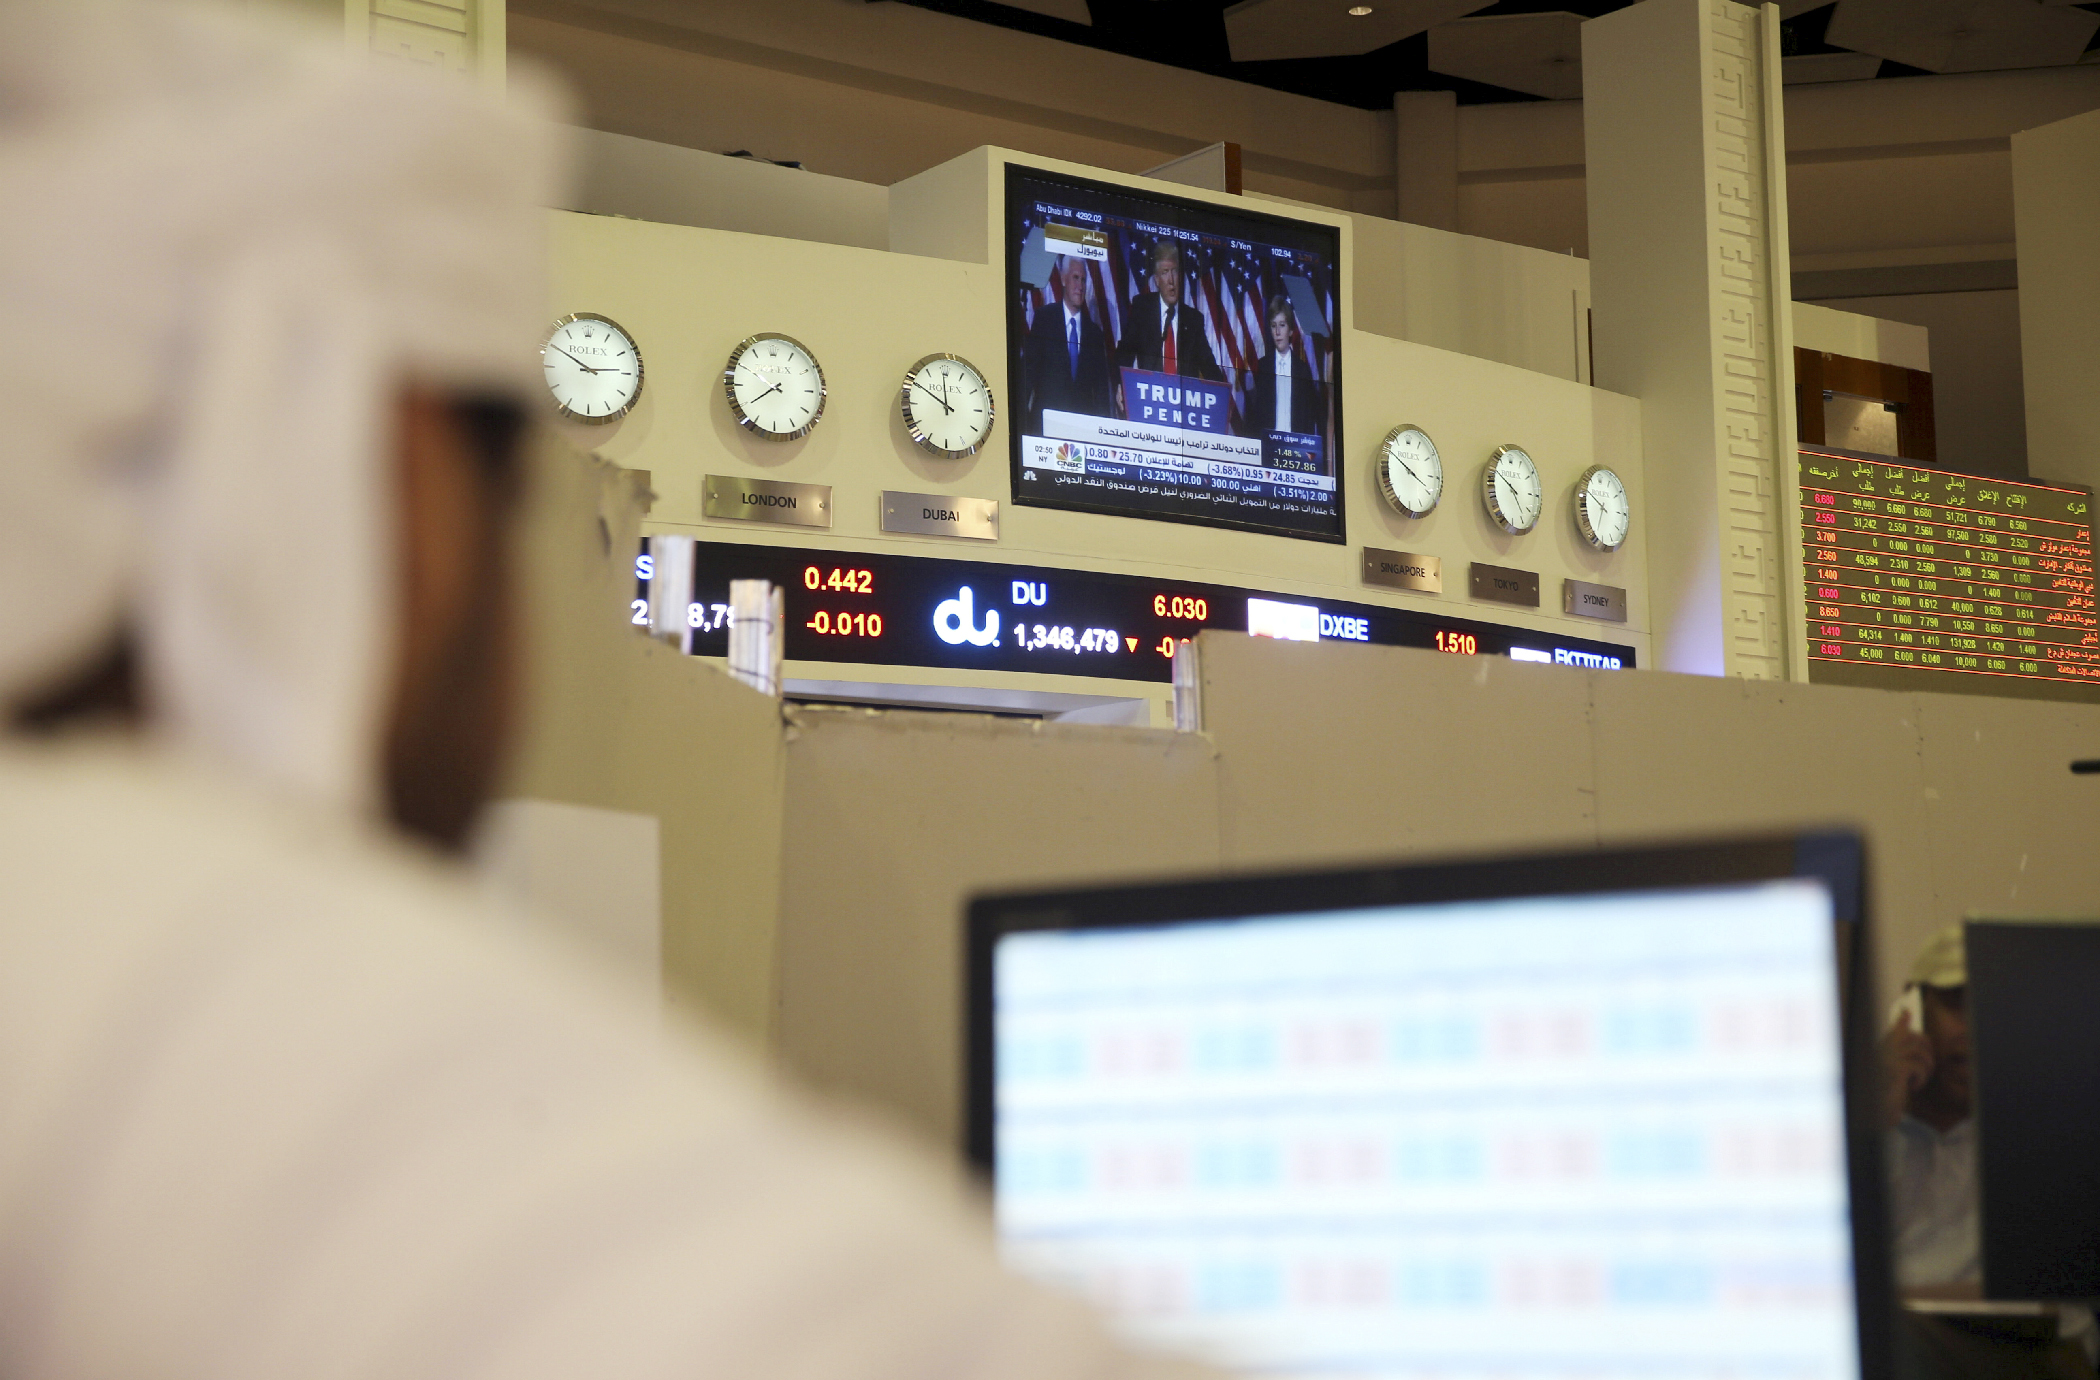 "A trader watches Trump on  TV as Dubai's stock market falls. The one upside for traders there? The U.S. <a href=""http://www.reuters.com/article/mideast-stocks-idUSL8N1DA5IB"" target=""_blank"">doesn't do much trade</a> with countries like Dubai, so Trump's protectionist trade policies may not impact them directly."